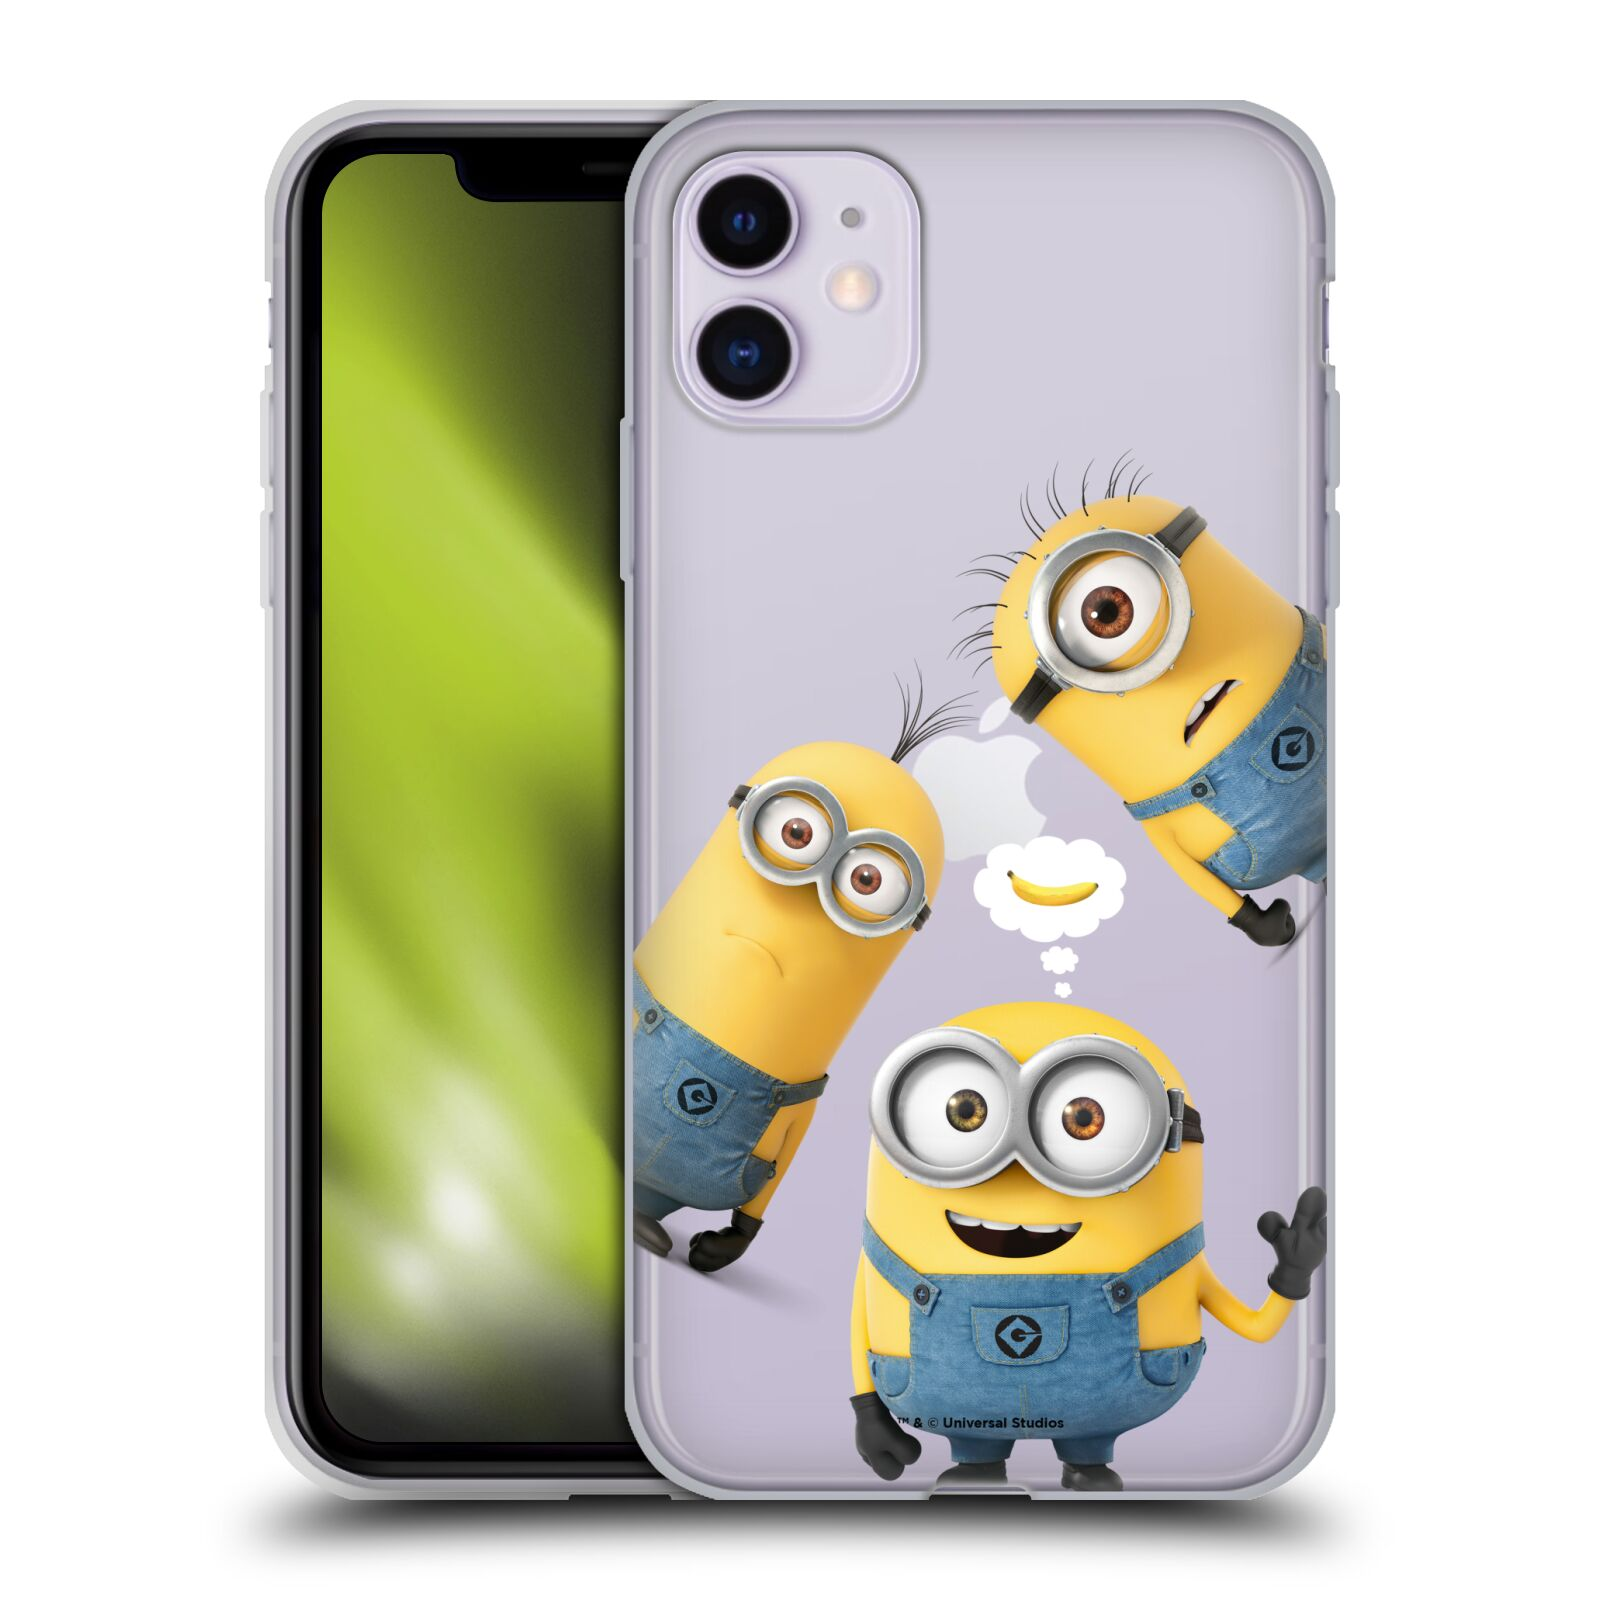 Silikonové pouzdro na mobil Apple iPhone 11 - Head Case - Mimoni Banana z filmu Já, padouch - Despicable Me